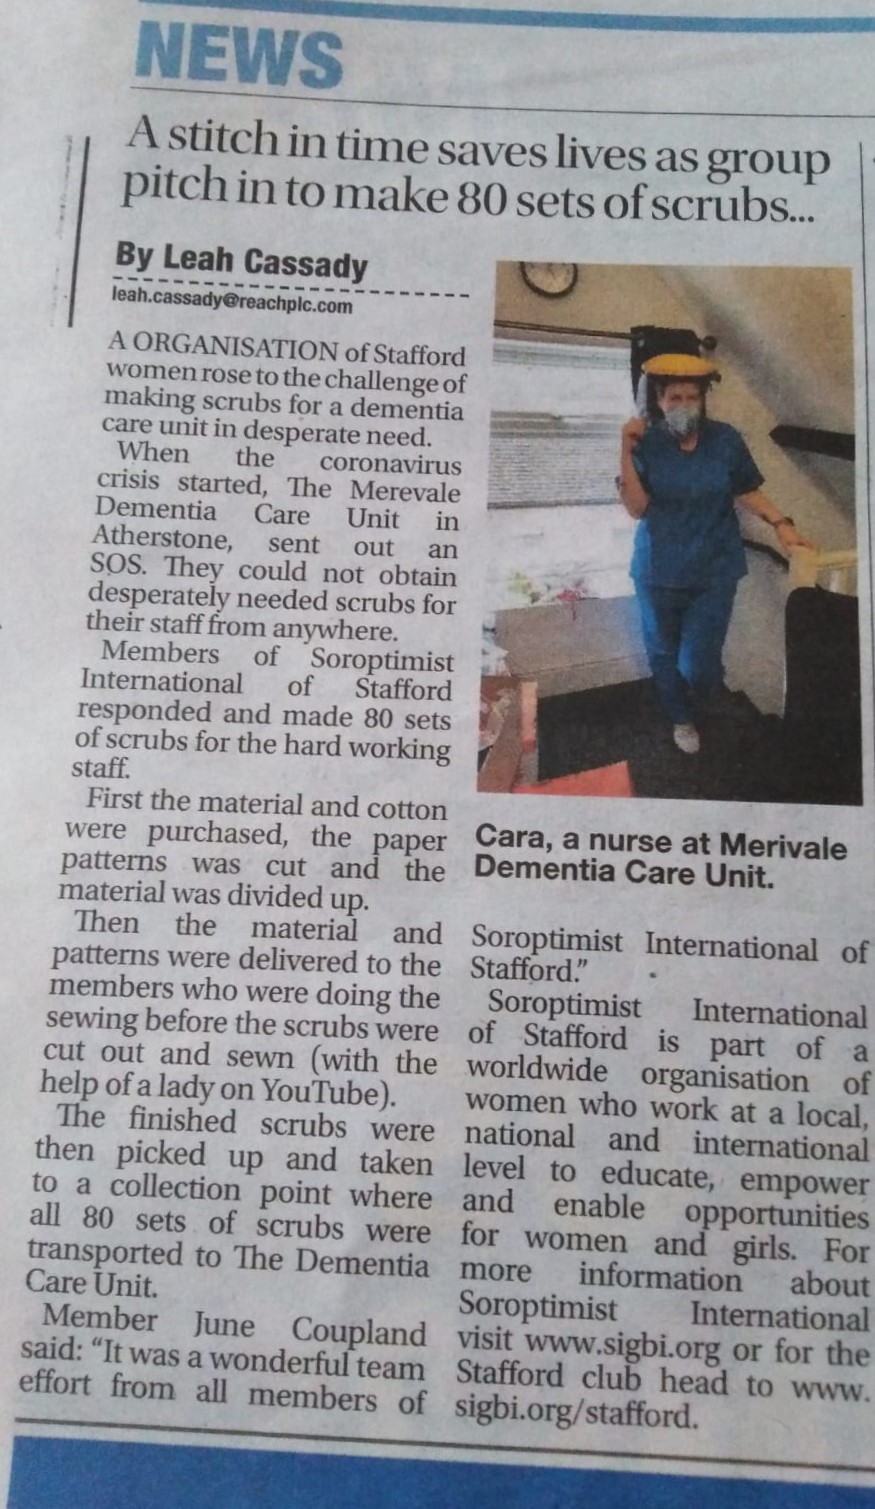 Newspaper article showing text and a picture of a nurse at Merivale Dementia care Unit wearing personal protective equipment made and donated by Stafford Soroptimists during the Covid-19 pandemic.